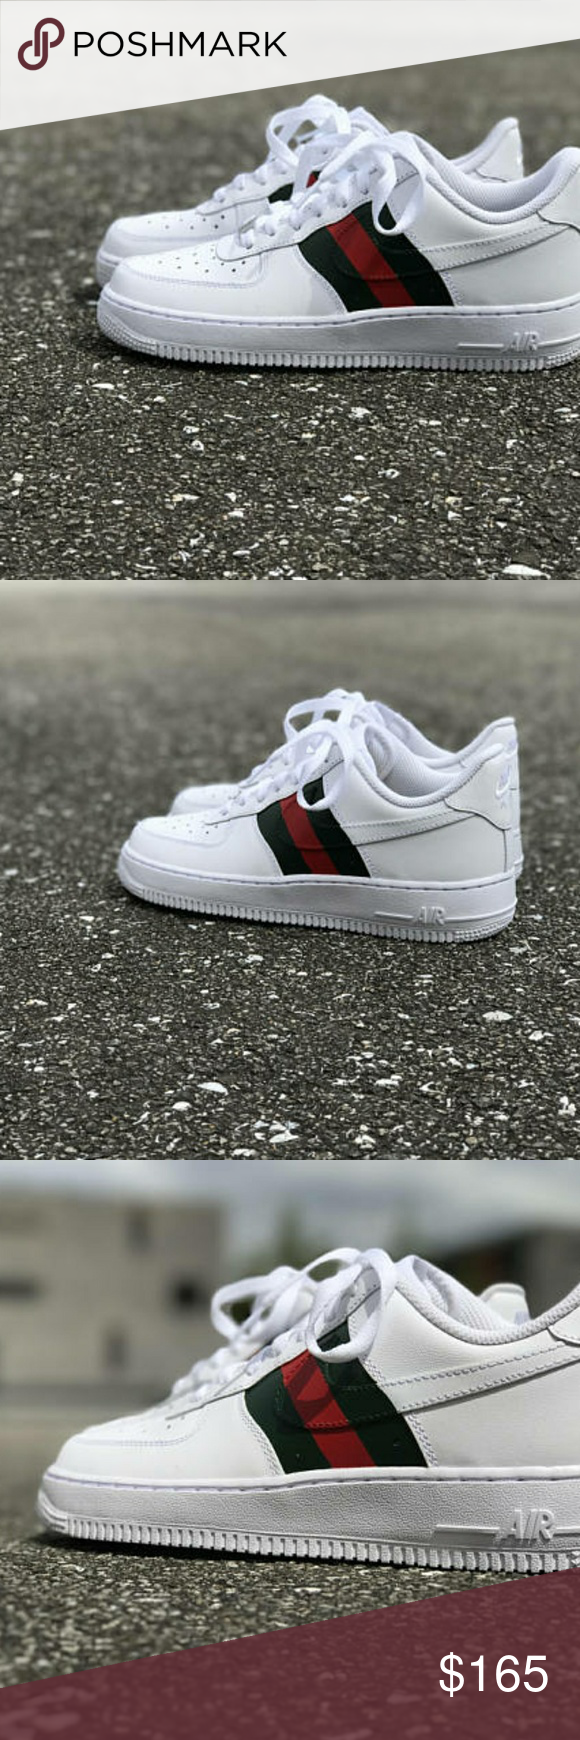 promo code f77eb 10bf6 Gucci x nike air force one custom brand new Gucci x nike air force one  custom brand new with box multiple sizes avalible Jordan Shoes Sneakers